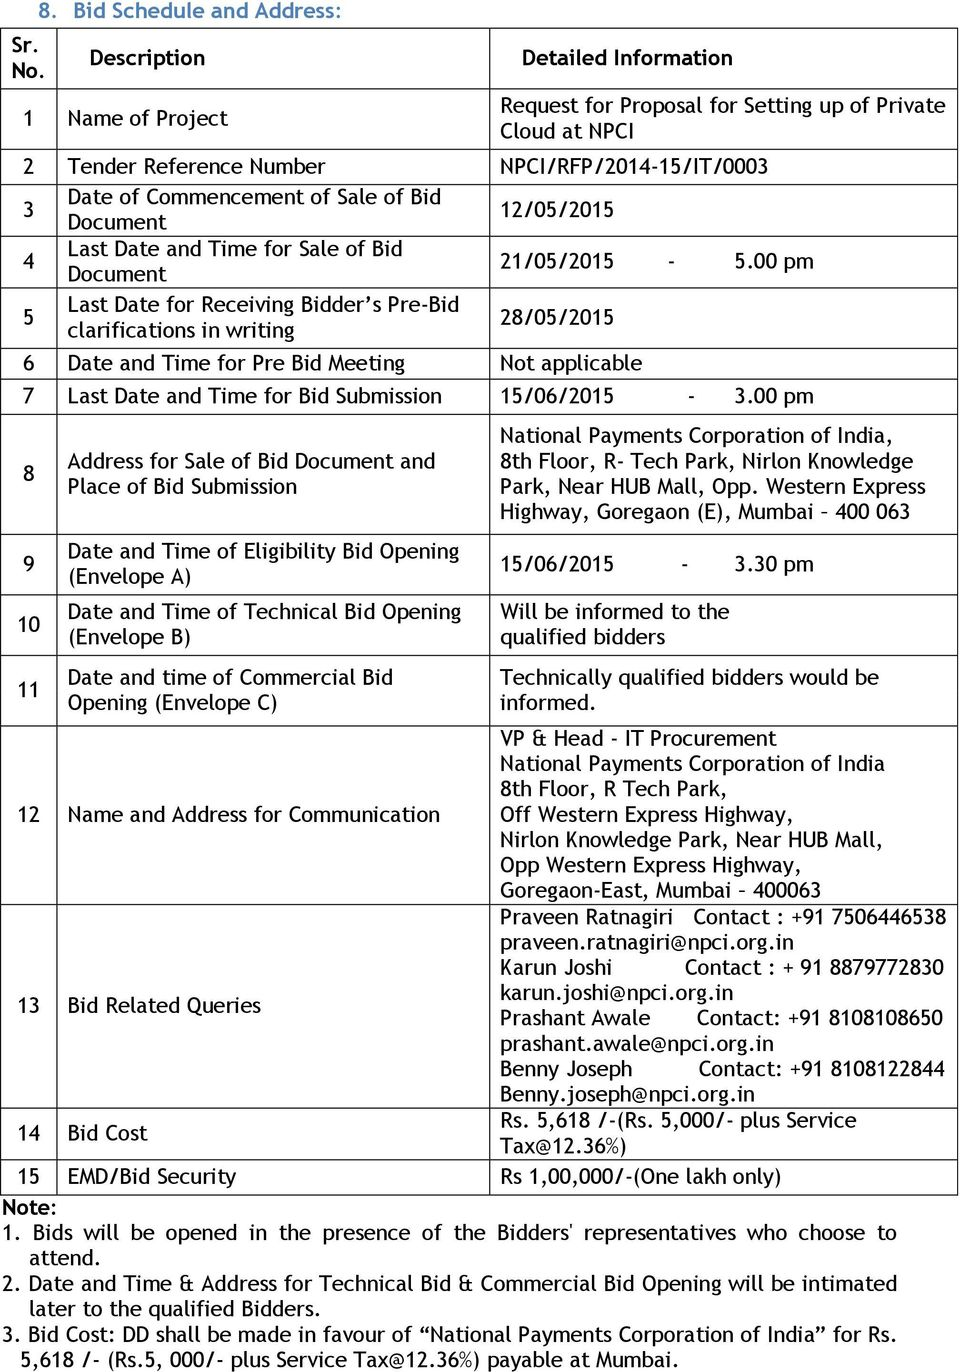 Commencement of Sale of Bid Document 12/05/2015 4 Last Date and Time for Sale of Bid Document 21/05/2015-5.